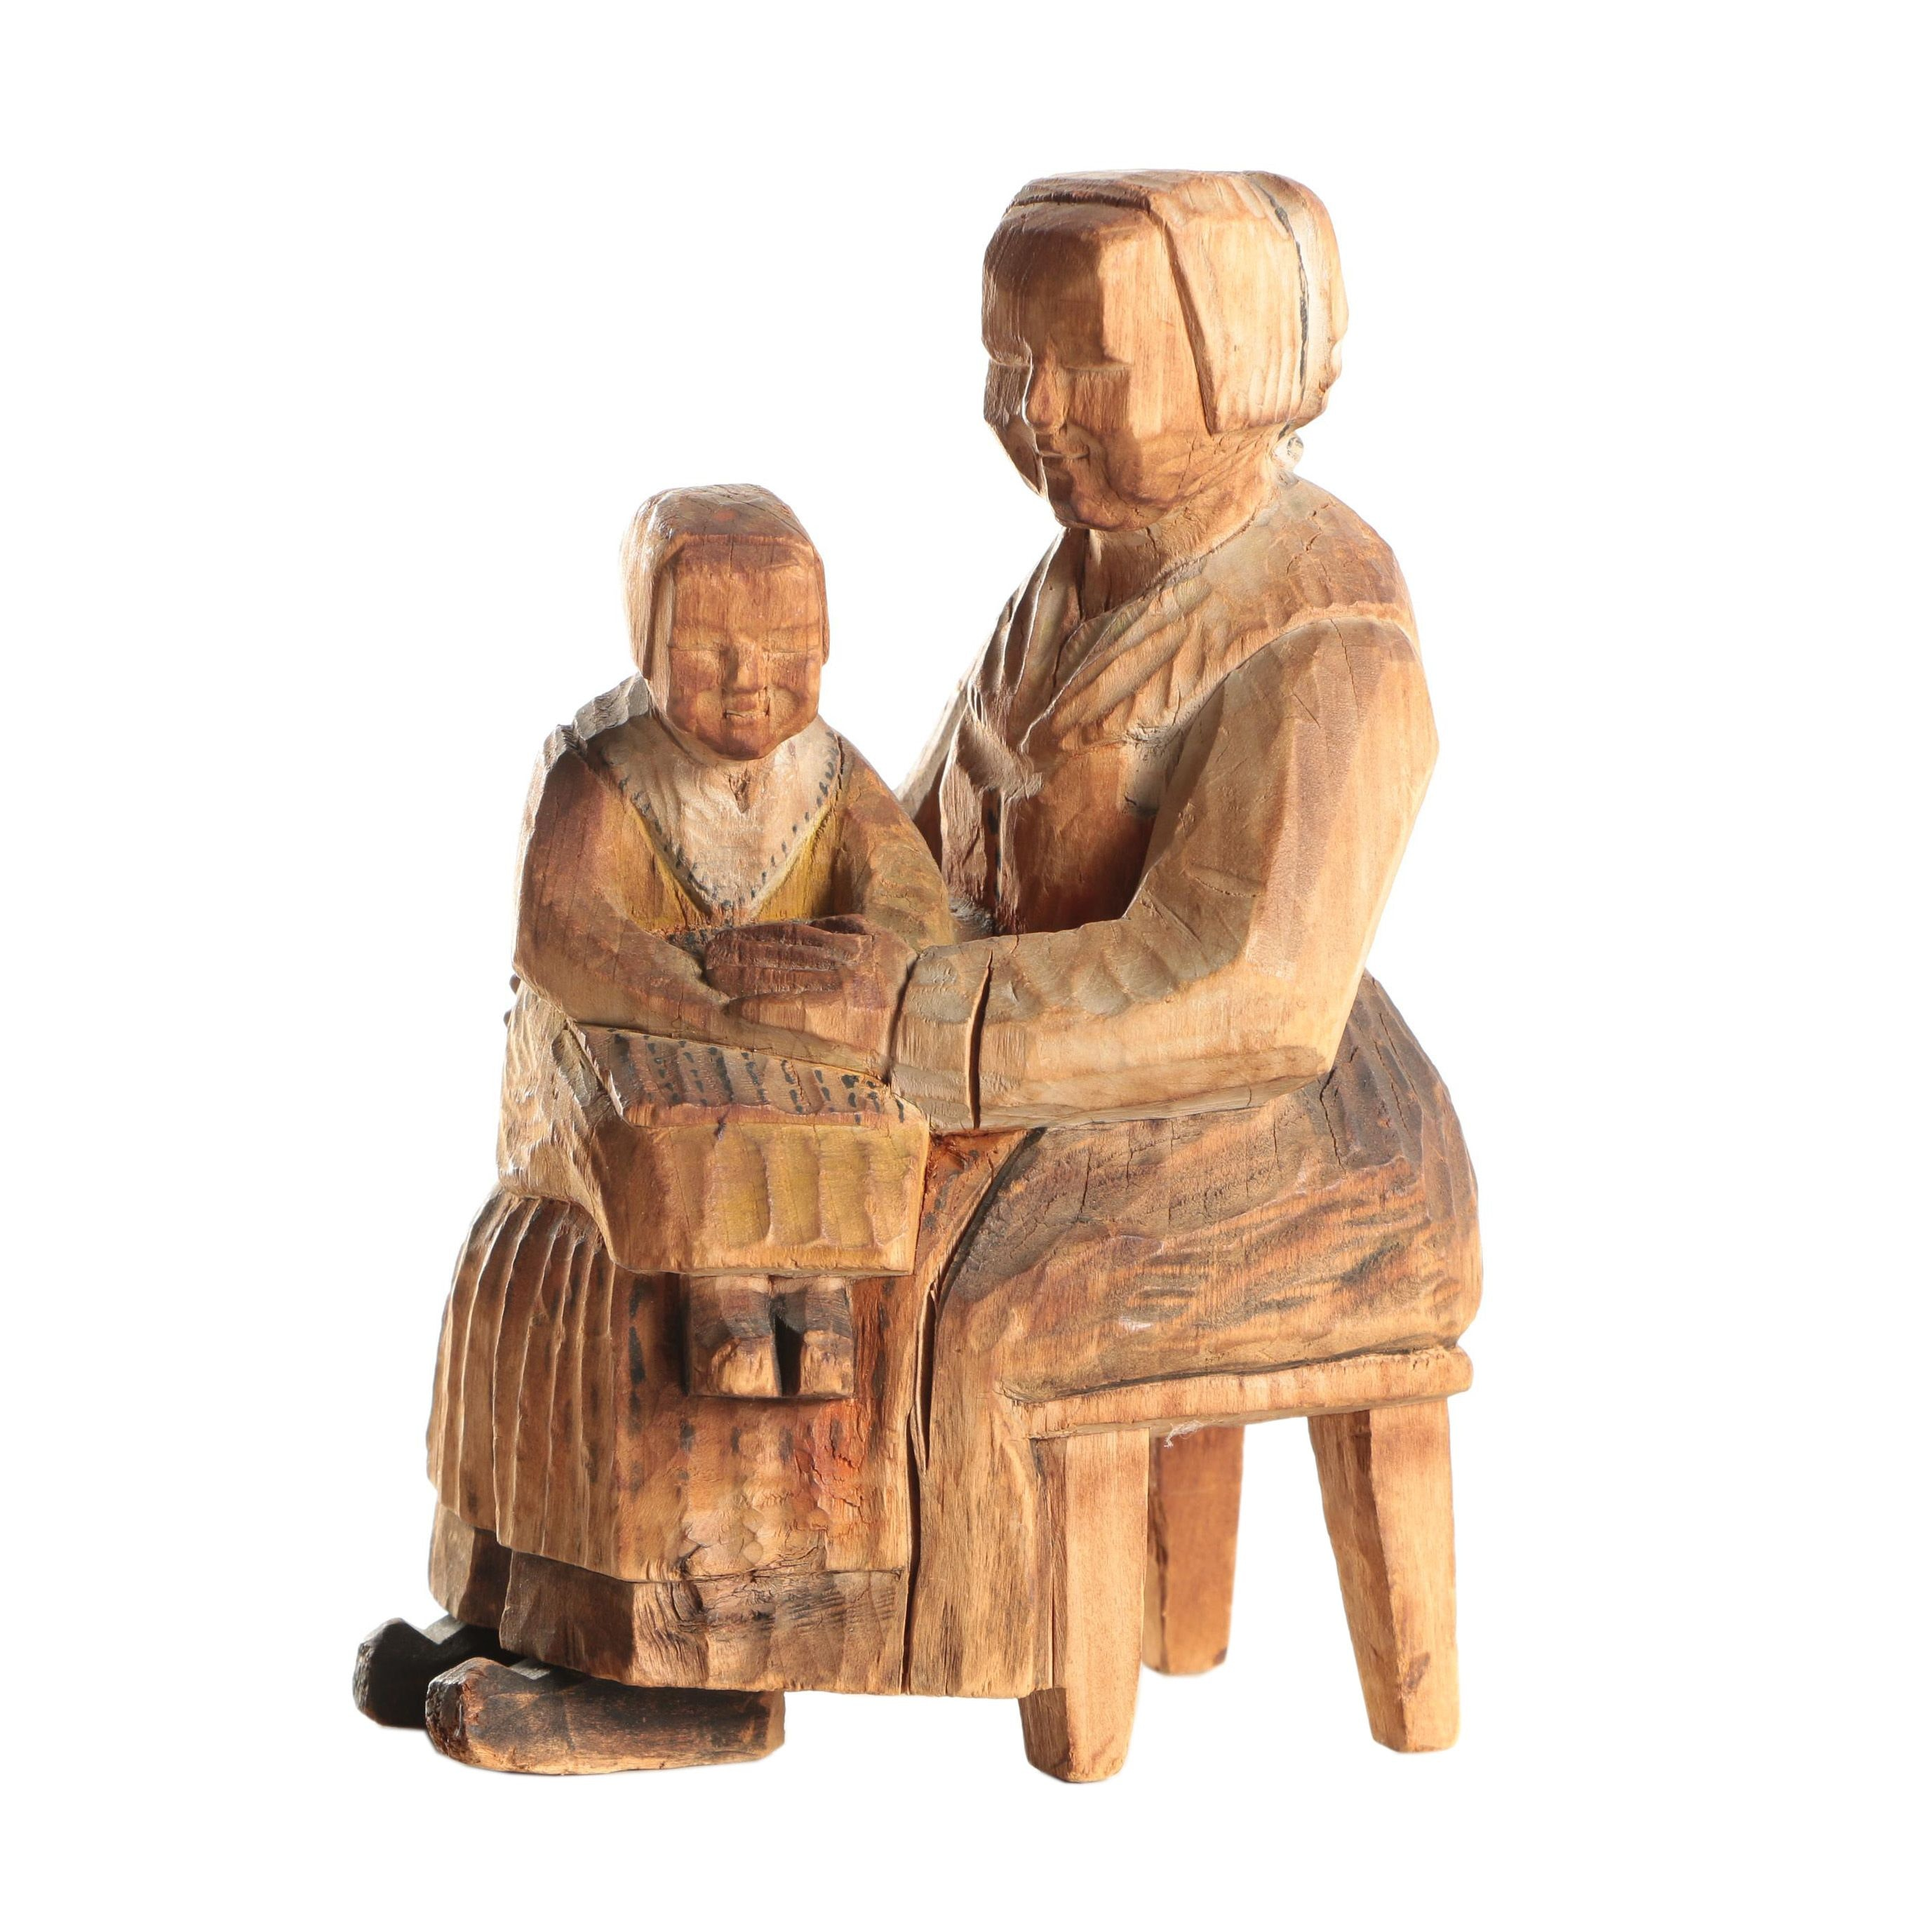 Leksand 1930 Swedish Flat Plane Carving of Mother and Child